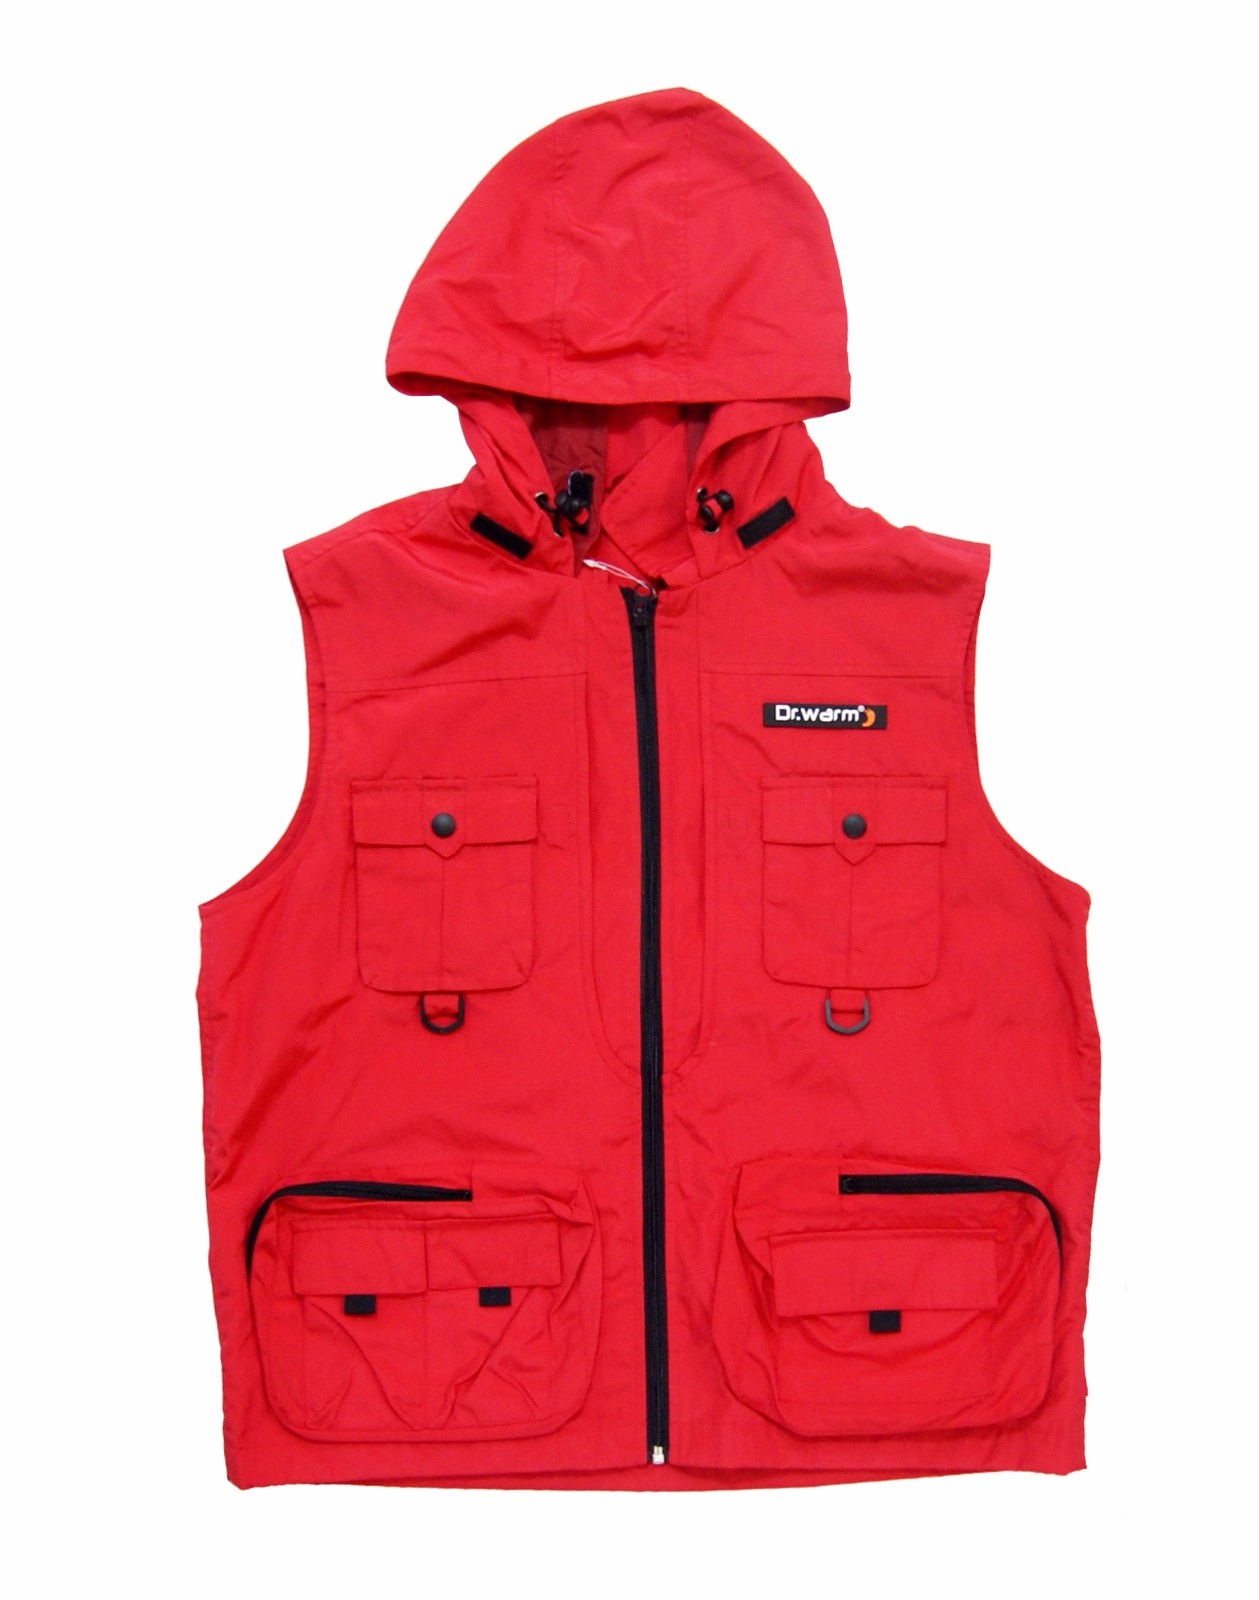 Dr. Warm fishing best women's heated vest with prined pattern for home-18